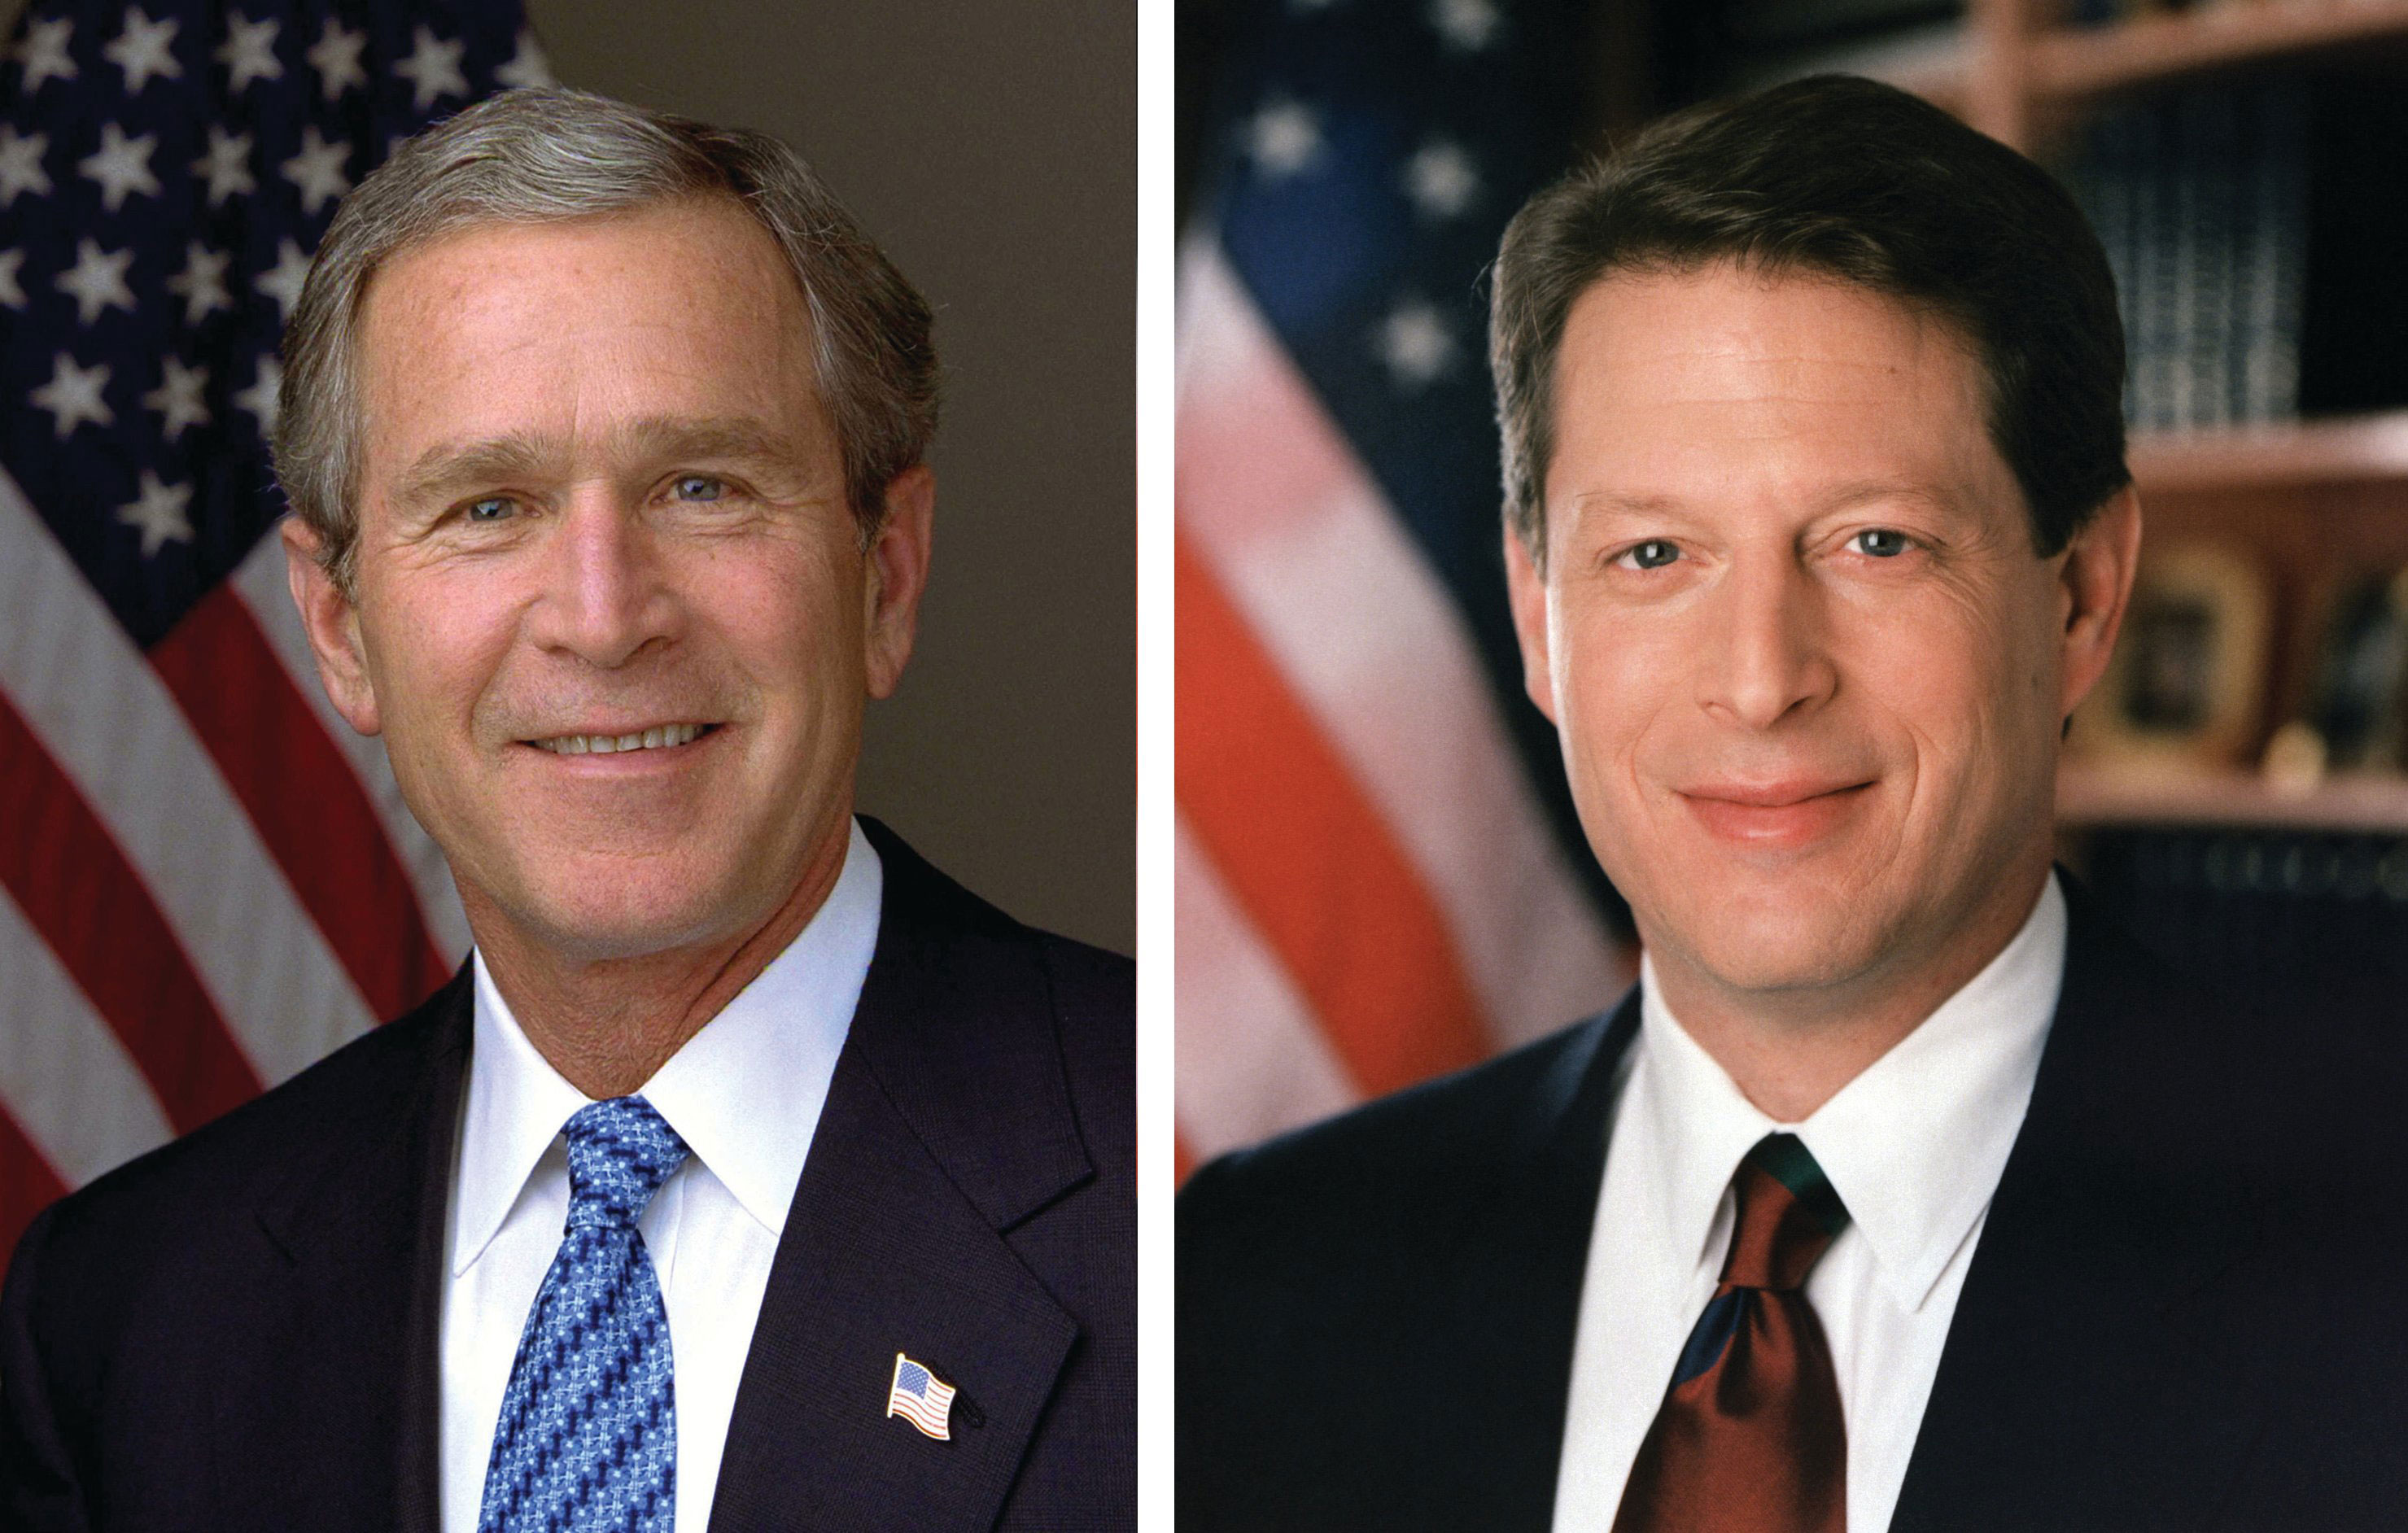 the close election campaign between al gore and george w bush in 2000 The presidential election that took place on november 7, 2000, was so close that no one knew for more than a month who had won the election of 2000: texas governor george w bush (r), or vice president al gore (d) nationally, bush had won 246 electoral votes gore had won 260.